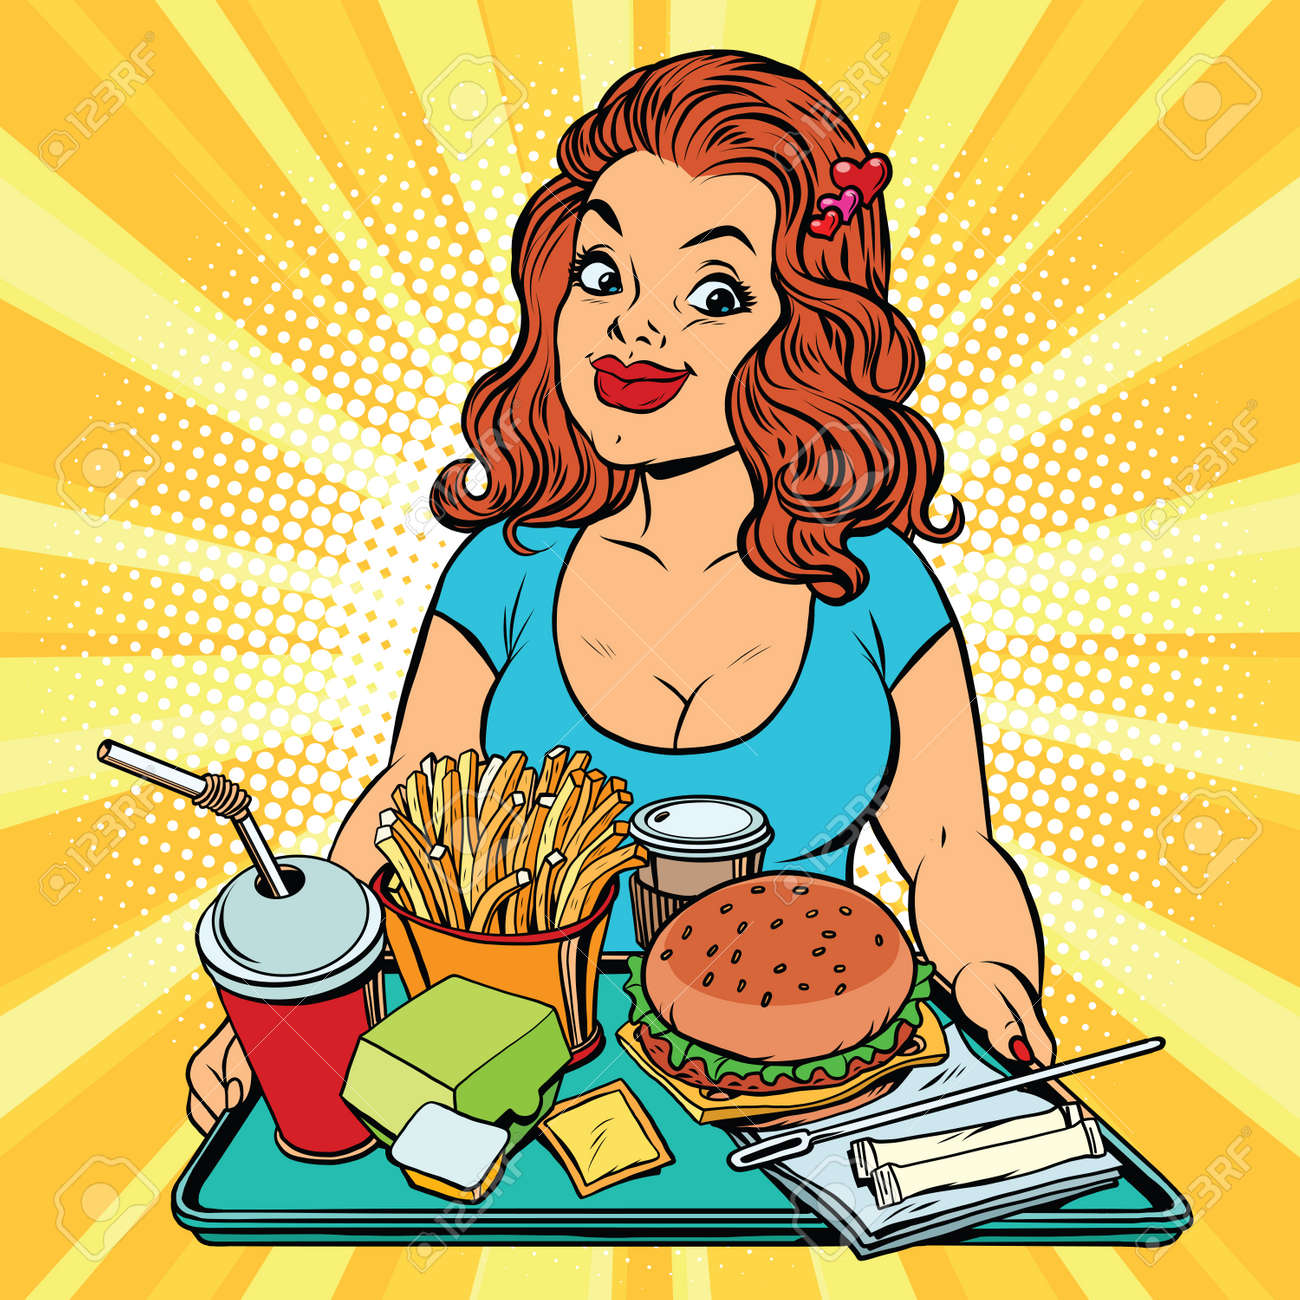 Lifestyle young woman and a fast food lunch in the restaurant, pop art retro comic book vector illustration. Burger, fries and a drink. The concept of healthy eating - 68502547